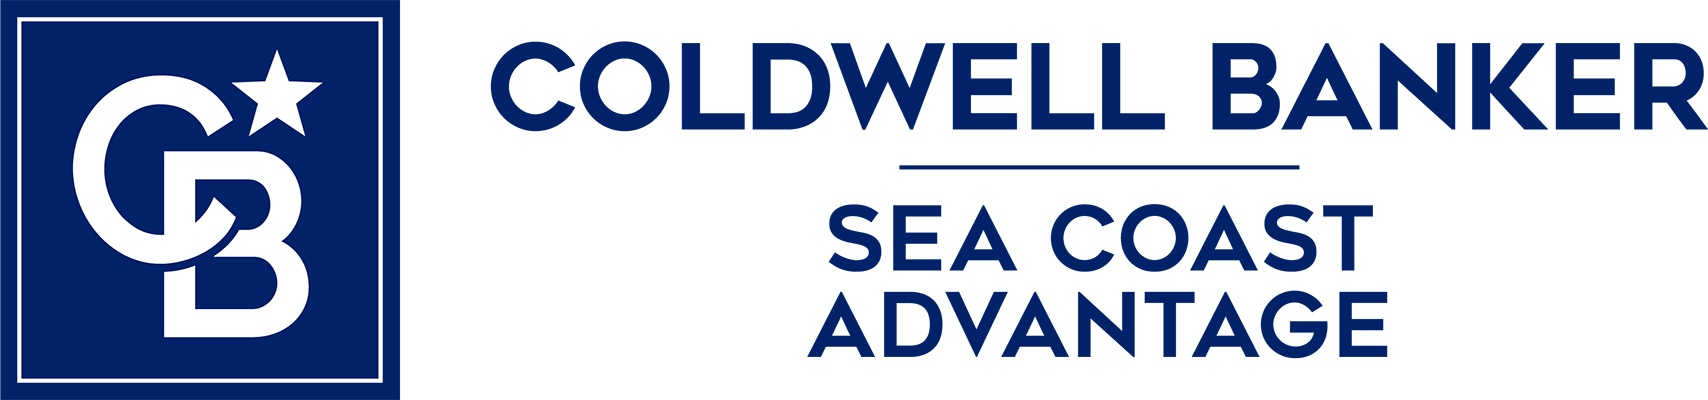 Alexis Holder - Coldwell Banker Sea Coast Advantage Realty